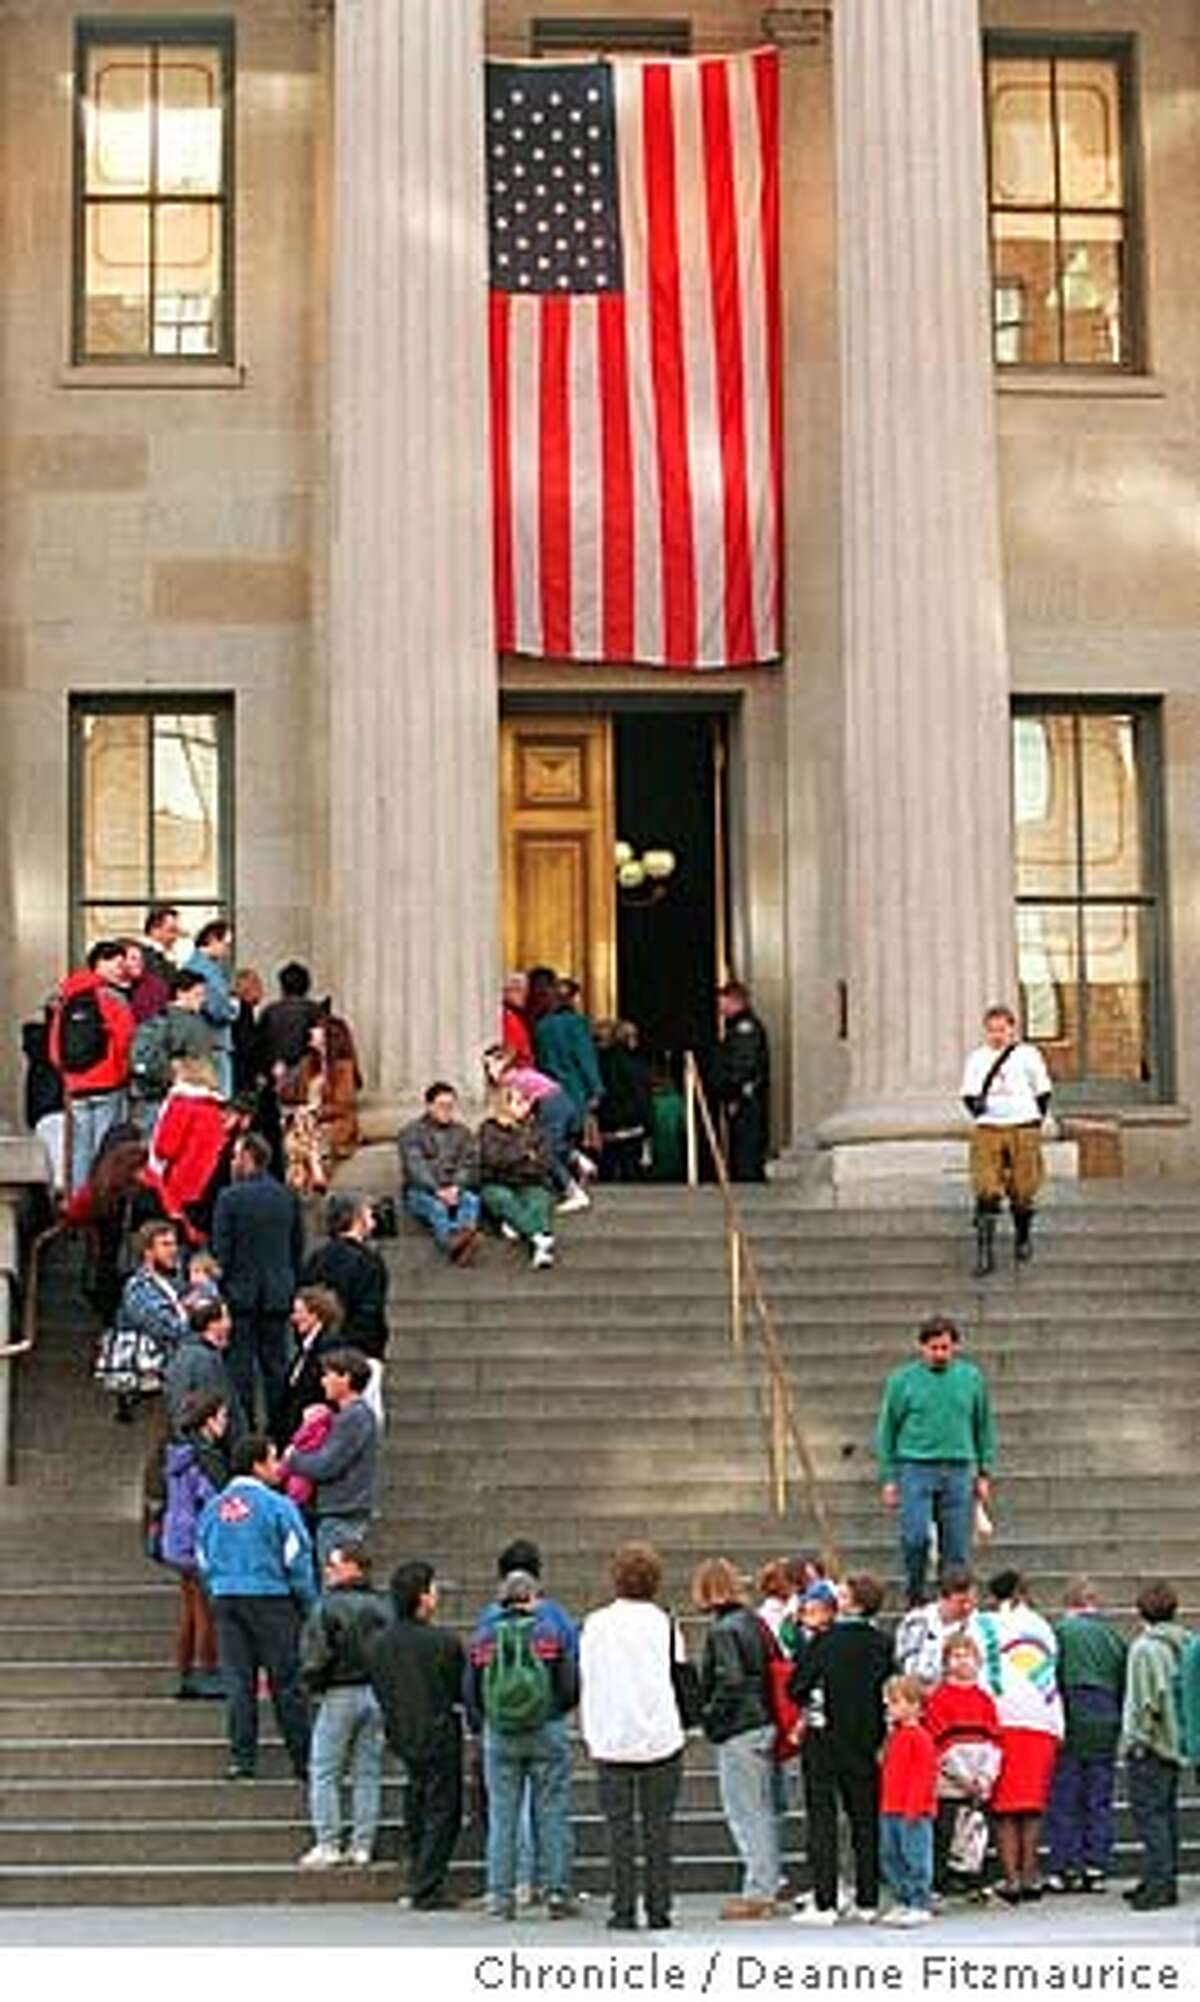 VISITORS WAIT ON THE STEPS OUTSIDE THE OLD MINT DURING ITS FINAL DAY.